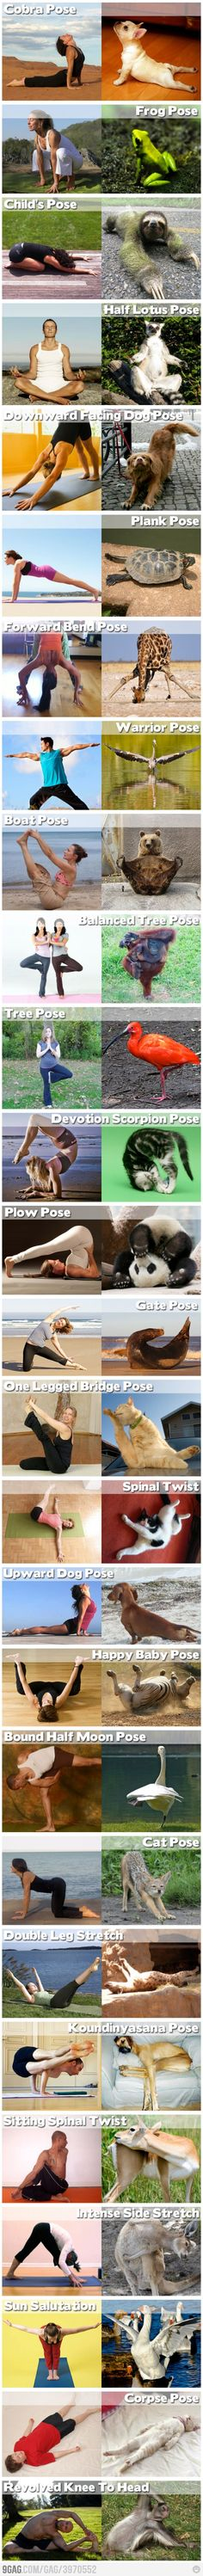 Yoga Positions Demonstrated By Animals